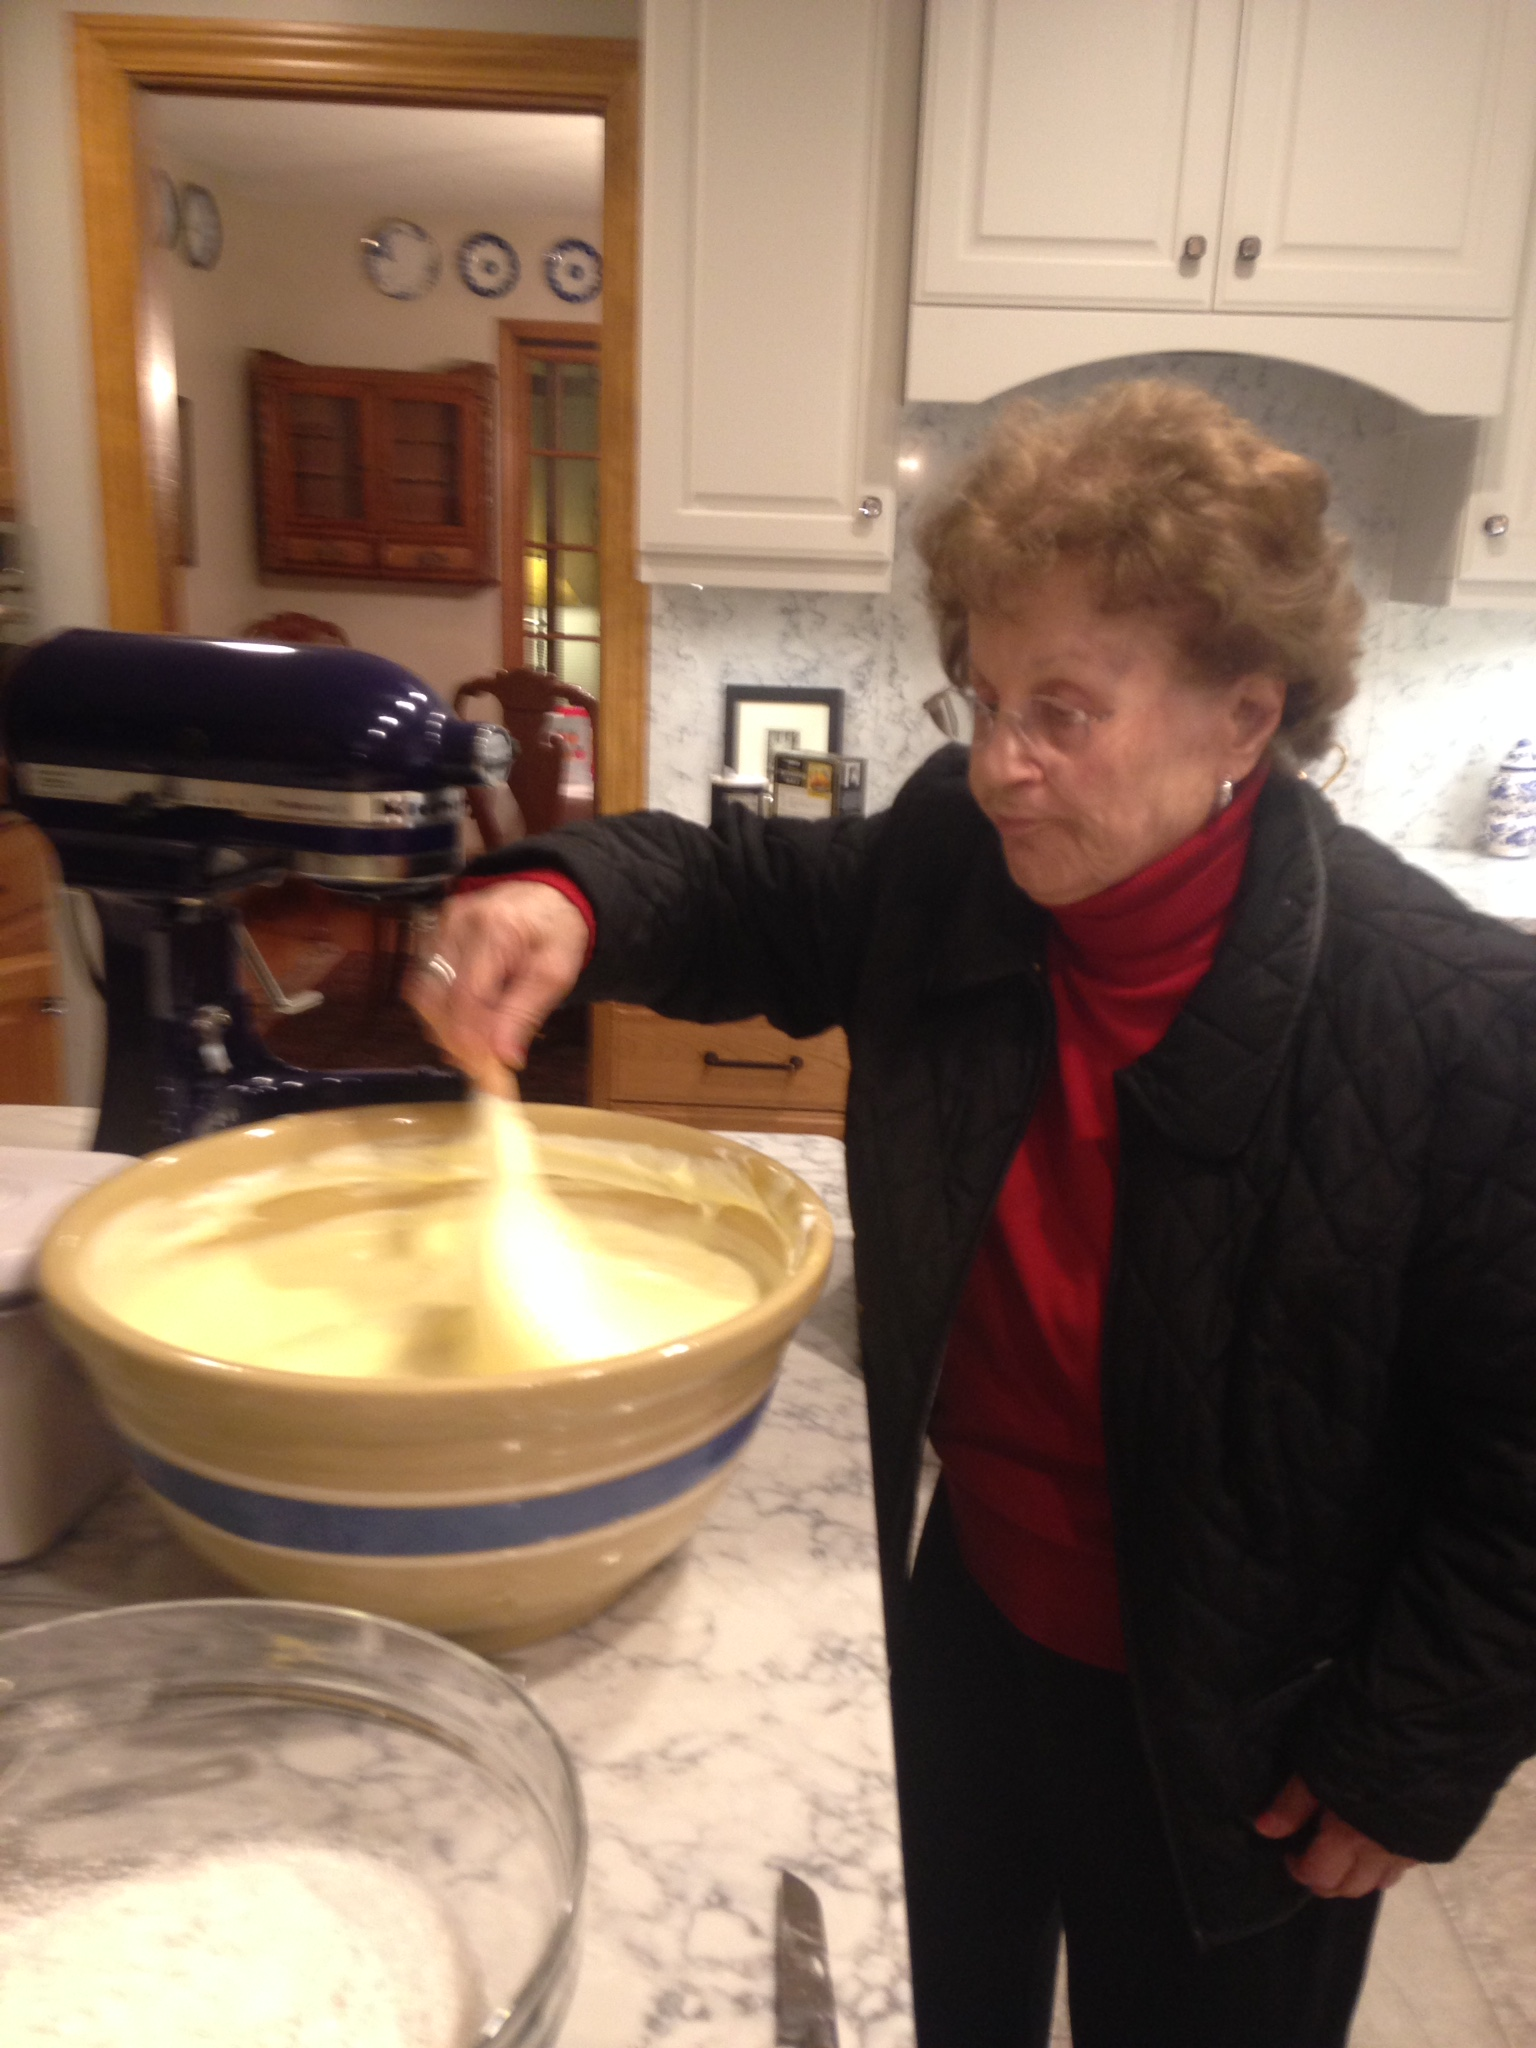 Sonia Sanders folding the flour into the cake